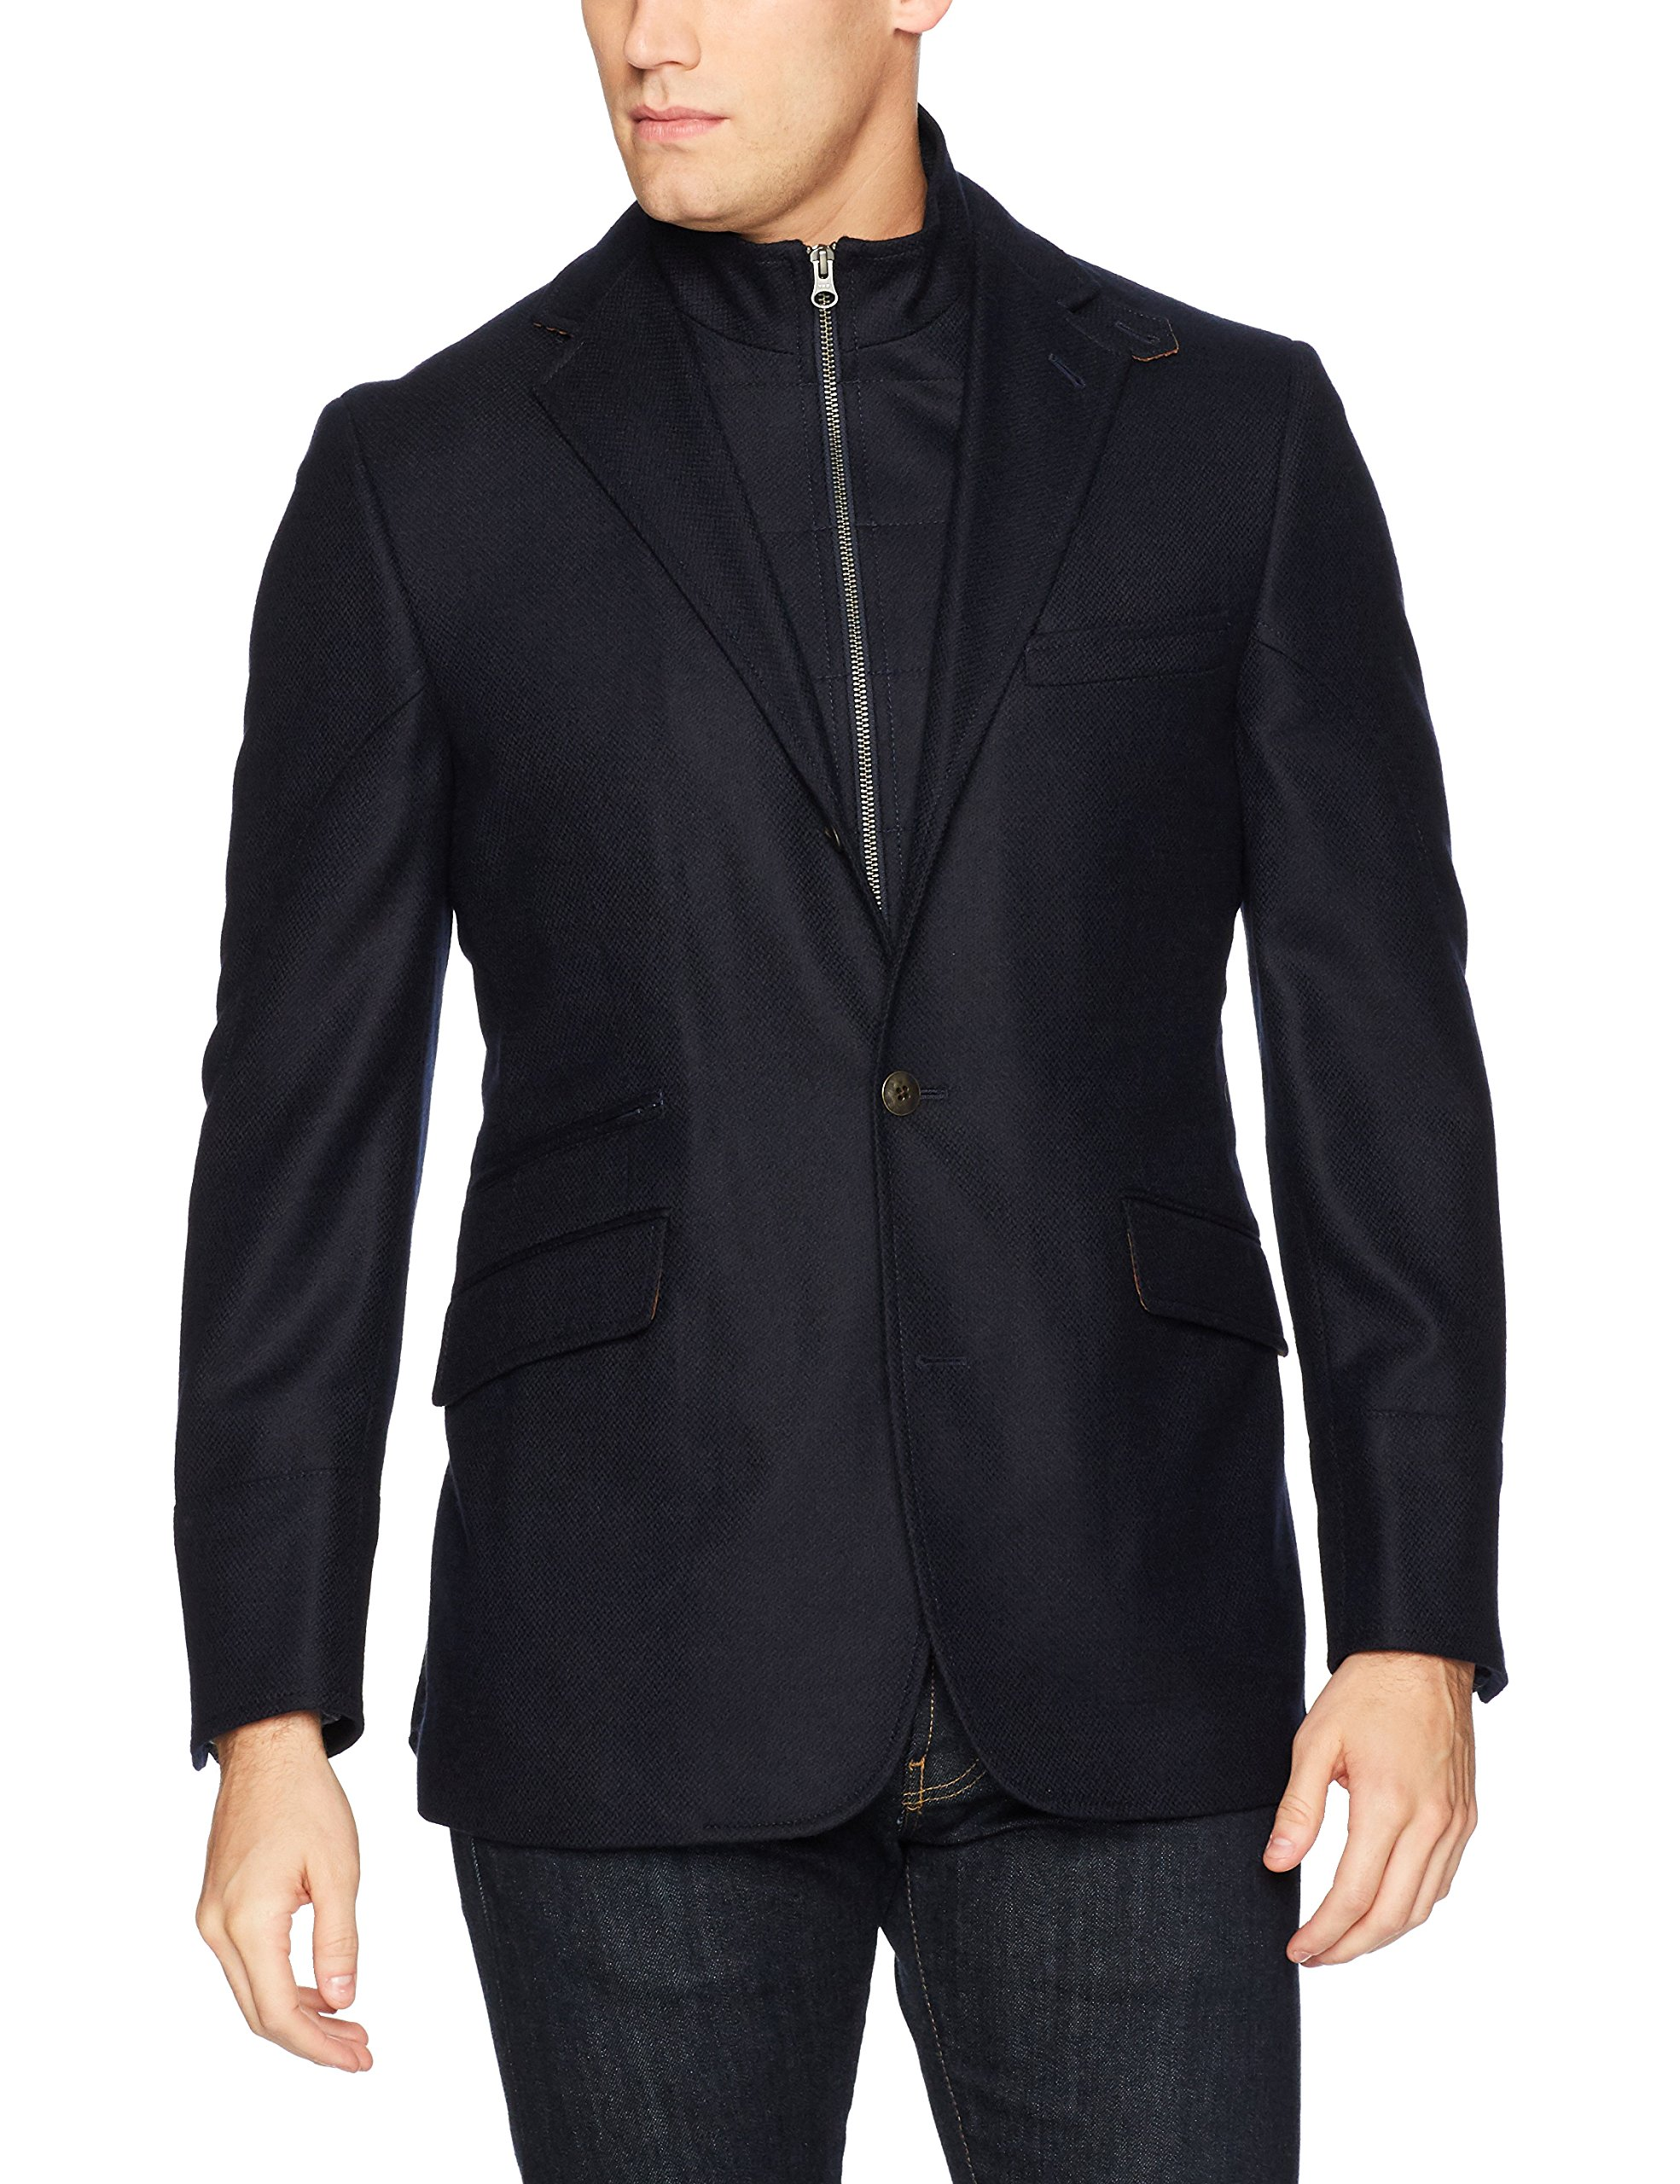 Kroon Men's W33070 Ritchie Aim Stretch Sportcoat Blazer, Navy, 46 Long